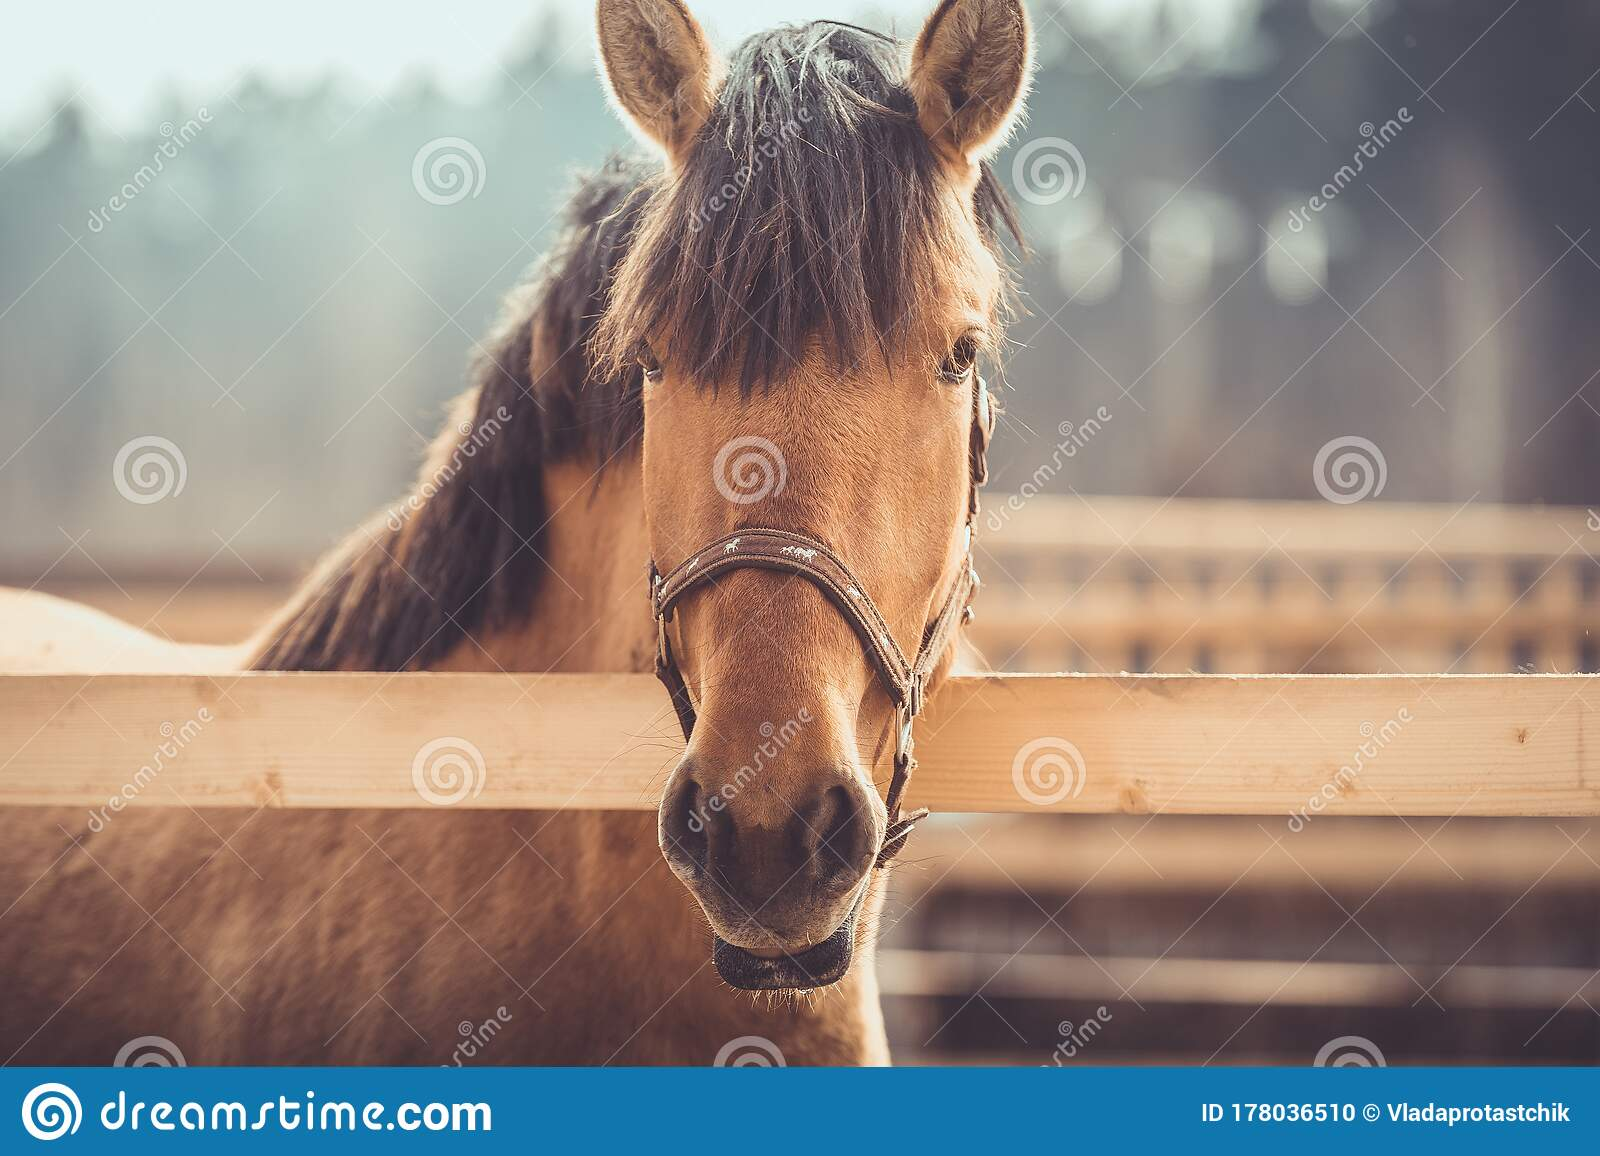 Young Buckskin Draft Horse In Halter On Paddock In Daytime Stock Photo Image Of Farm Horses 178036510